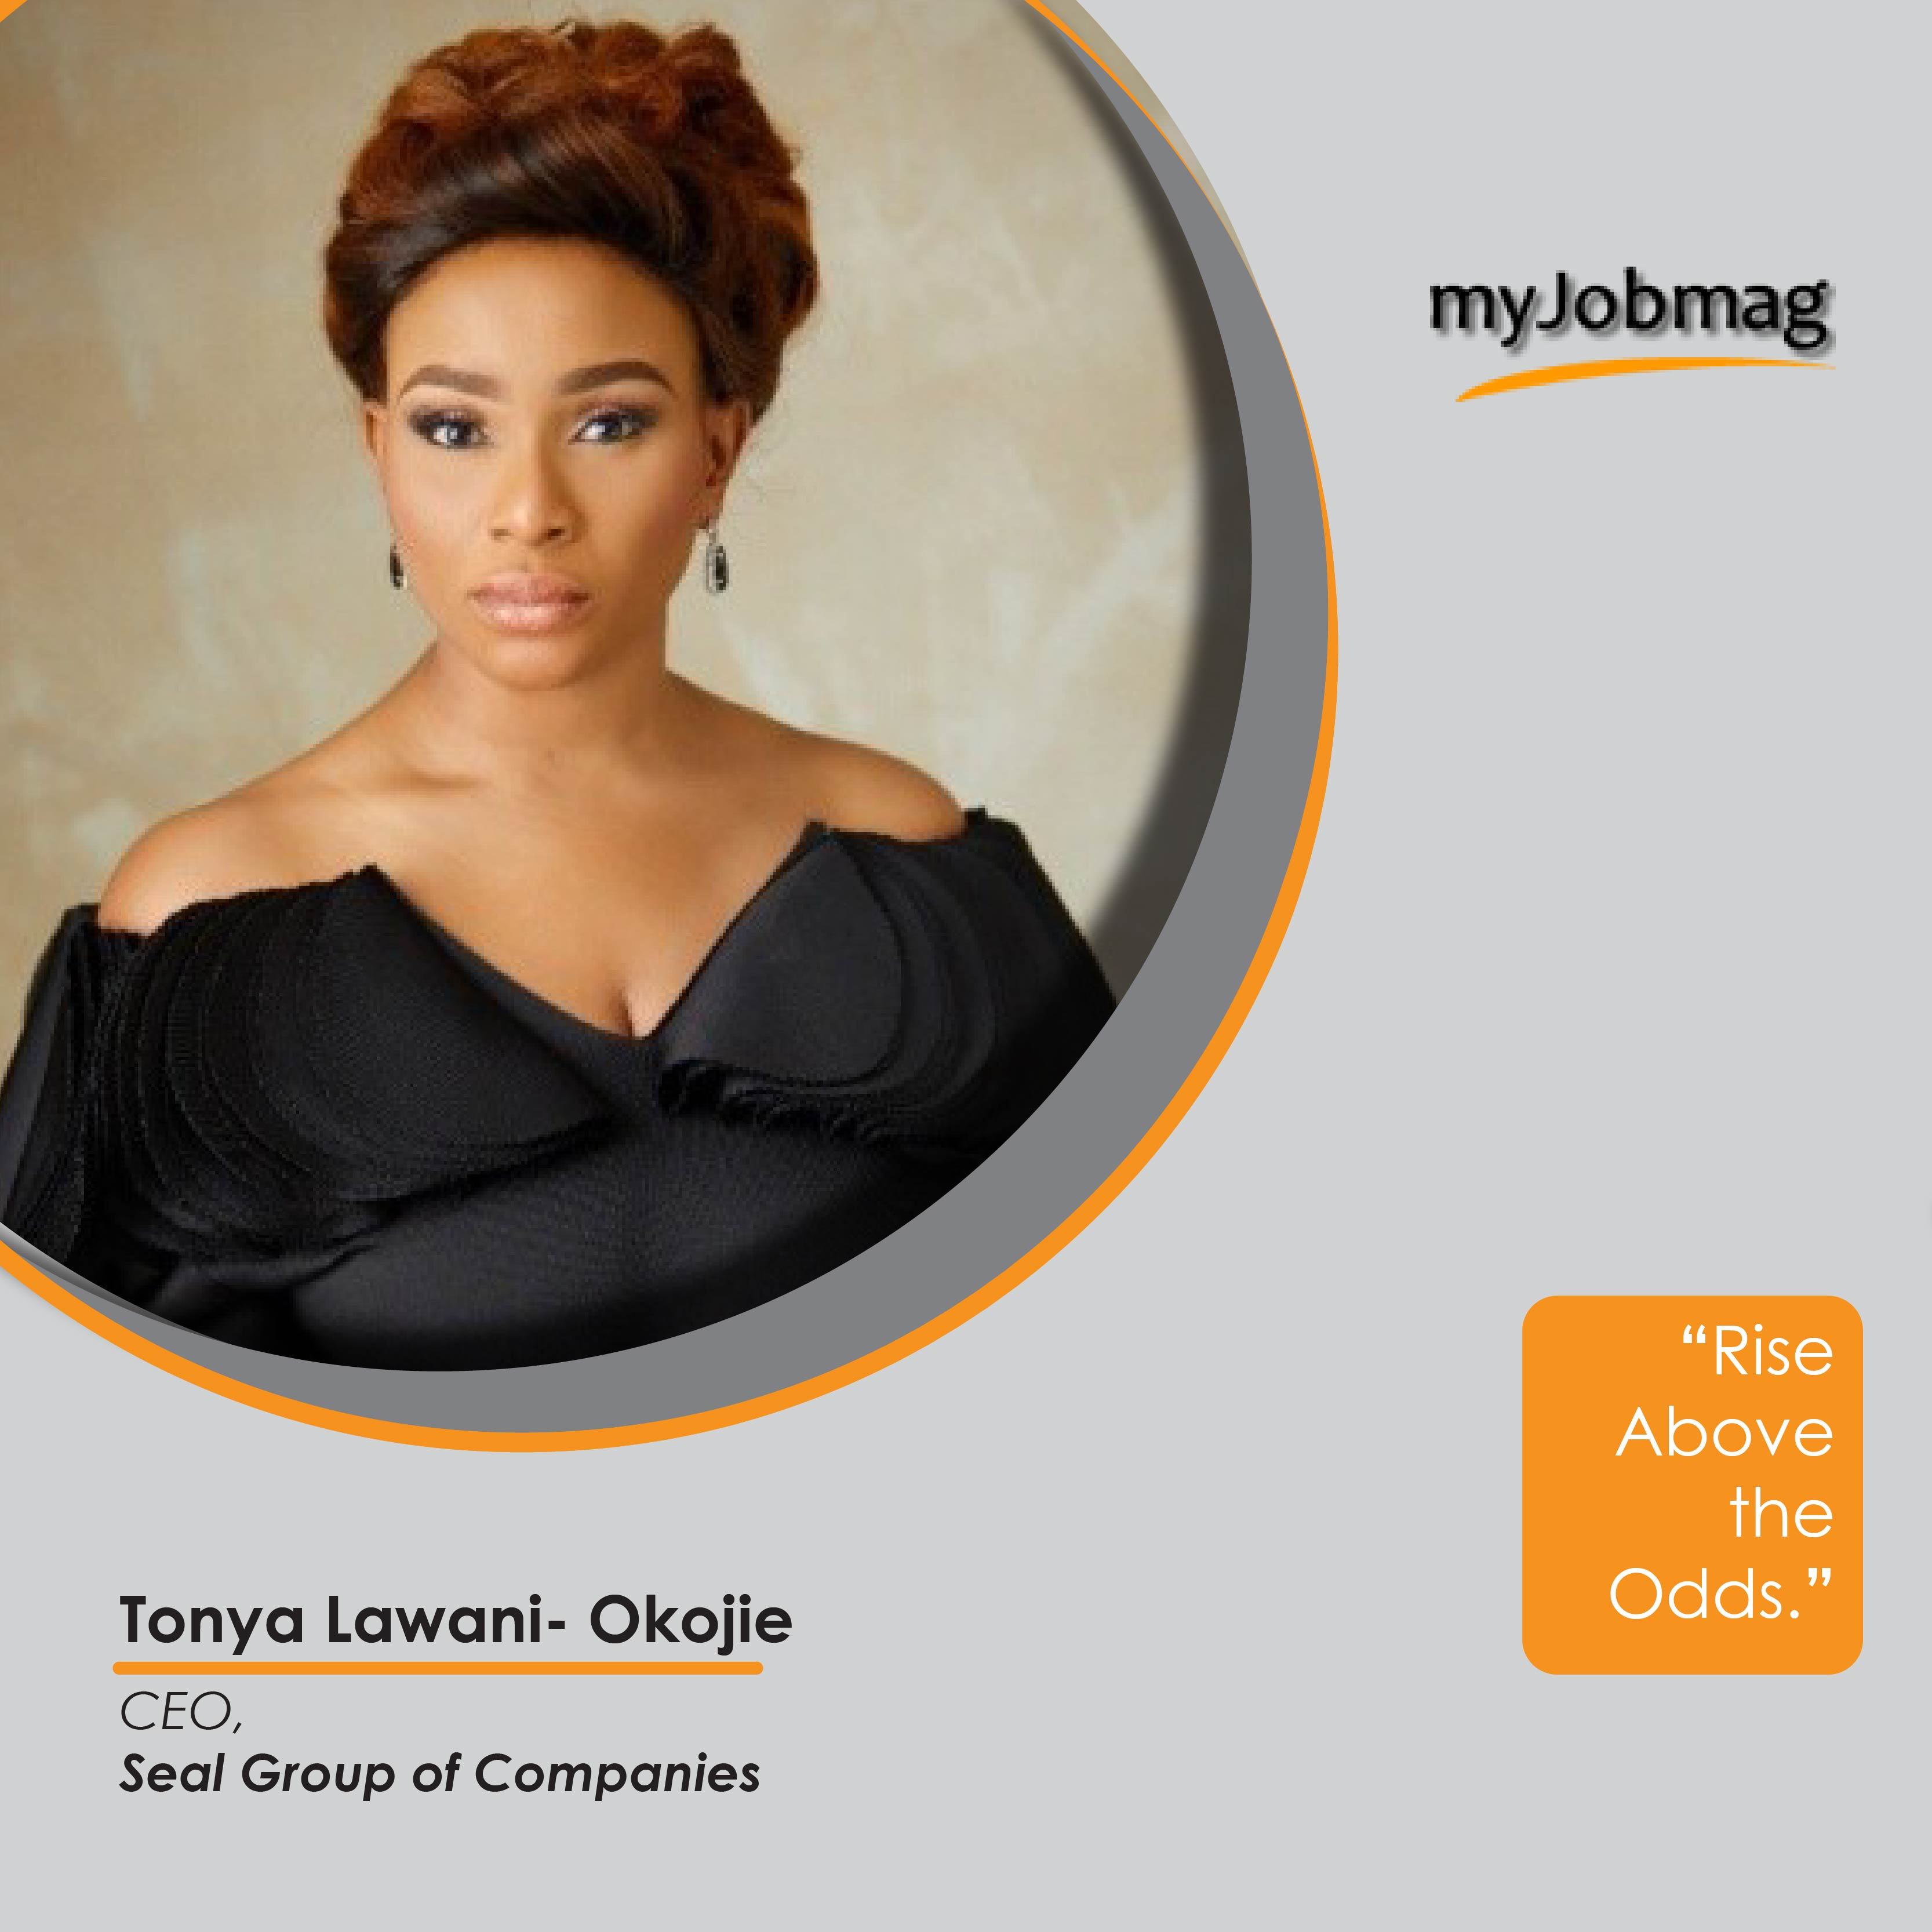 Tonya Lawani career advice MjobMag